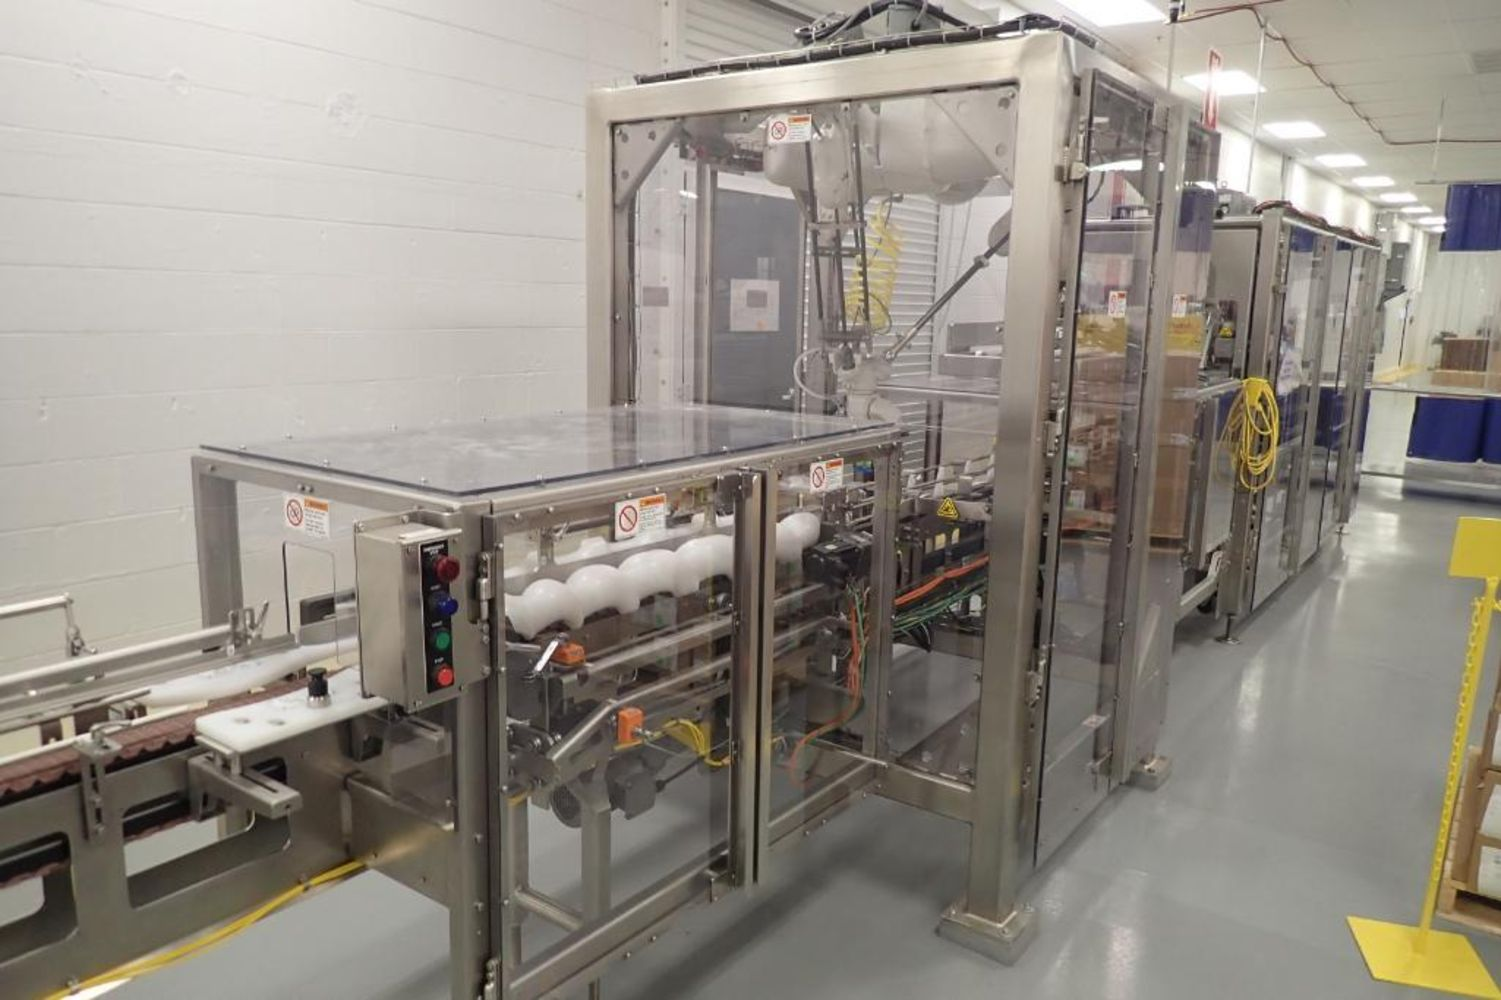 Corporate Auction Group to offer surplus late model packaging equipment from a major contract packaging & manufacturing provider.